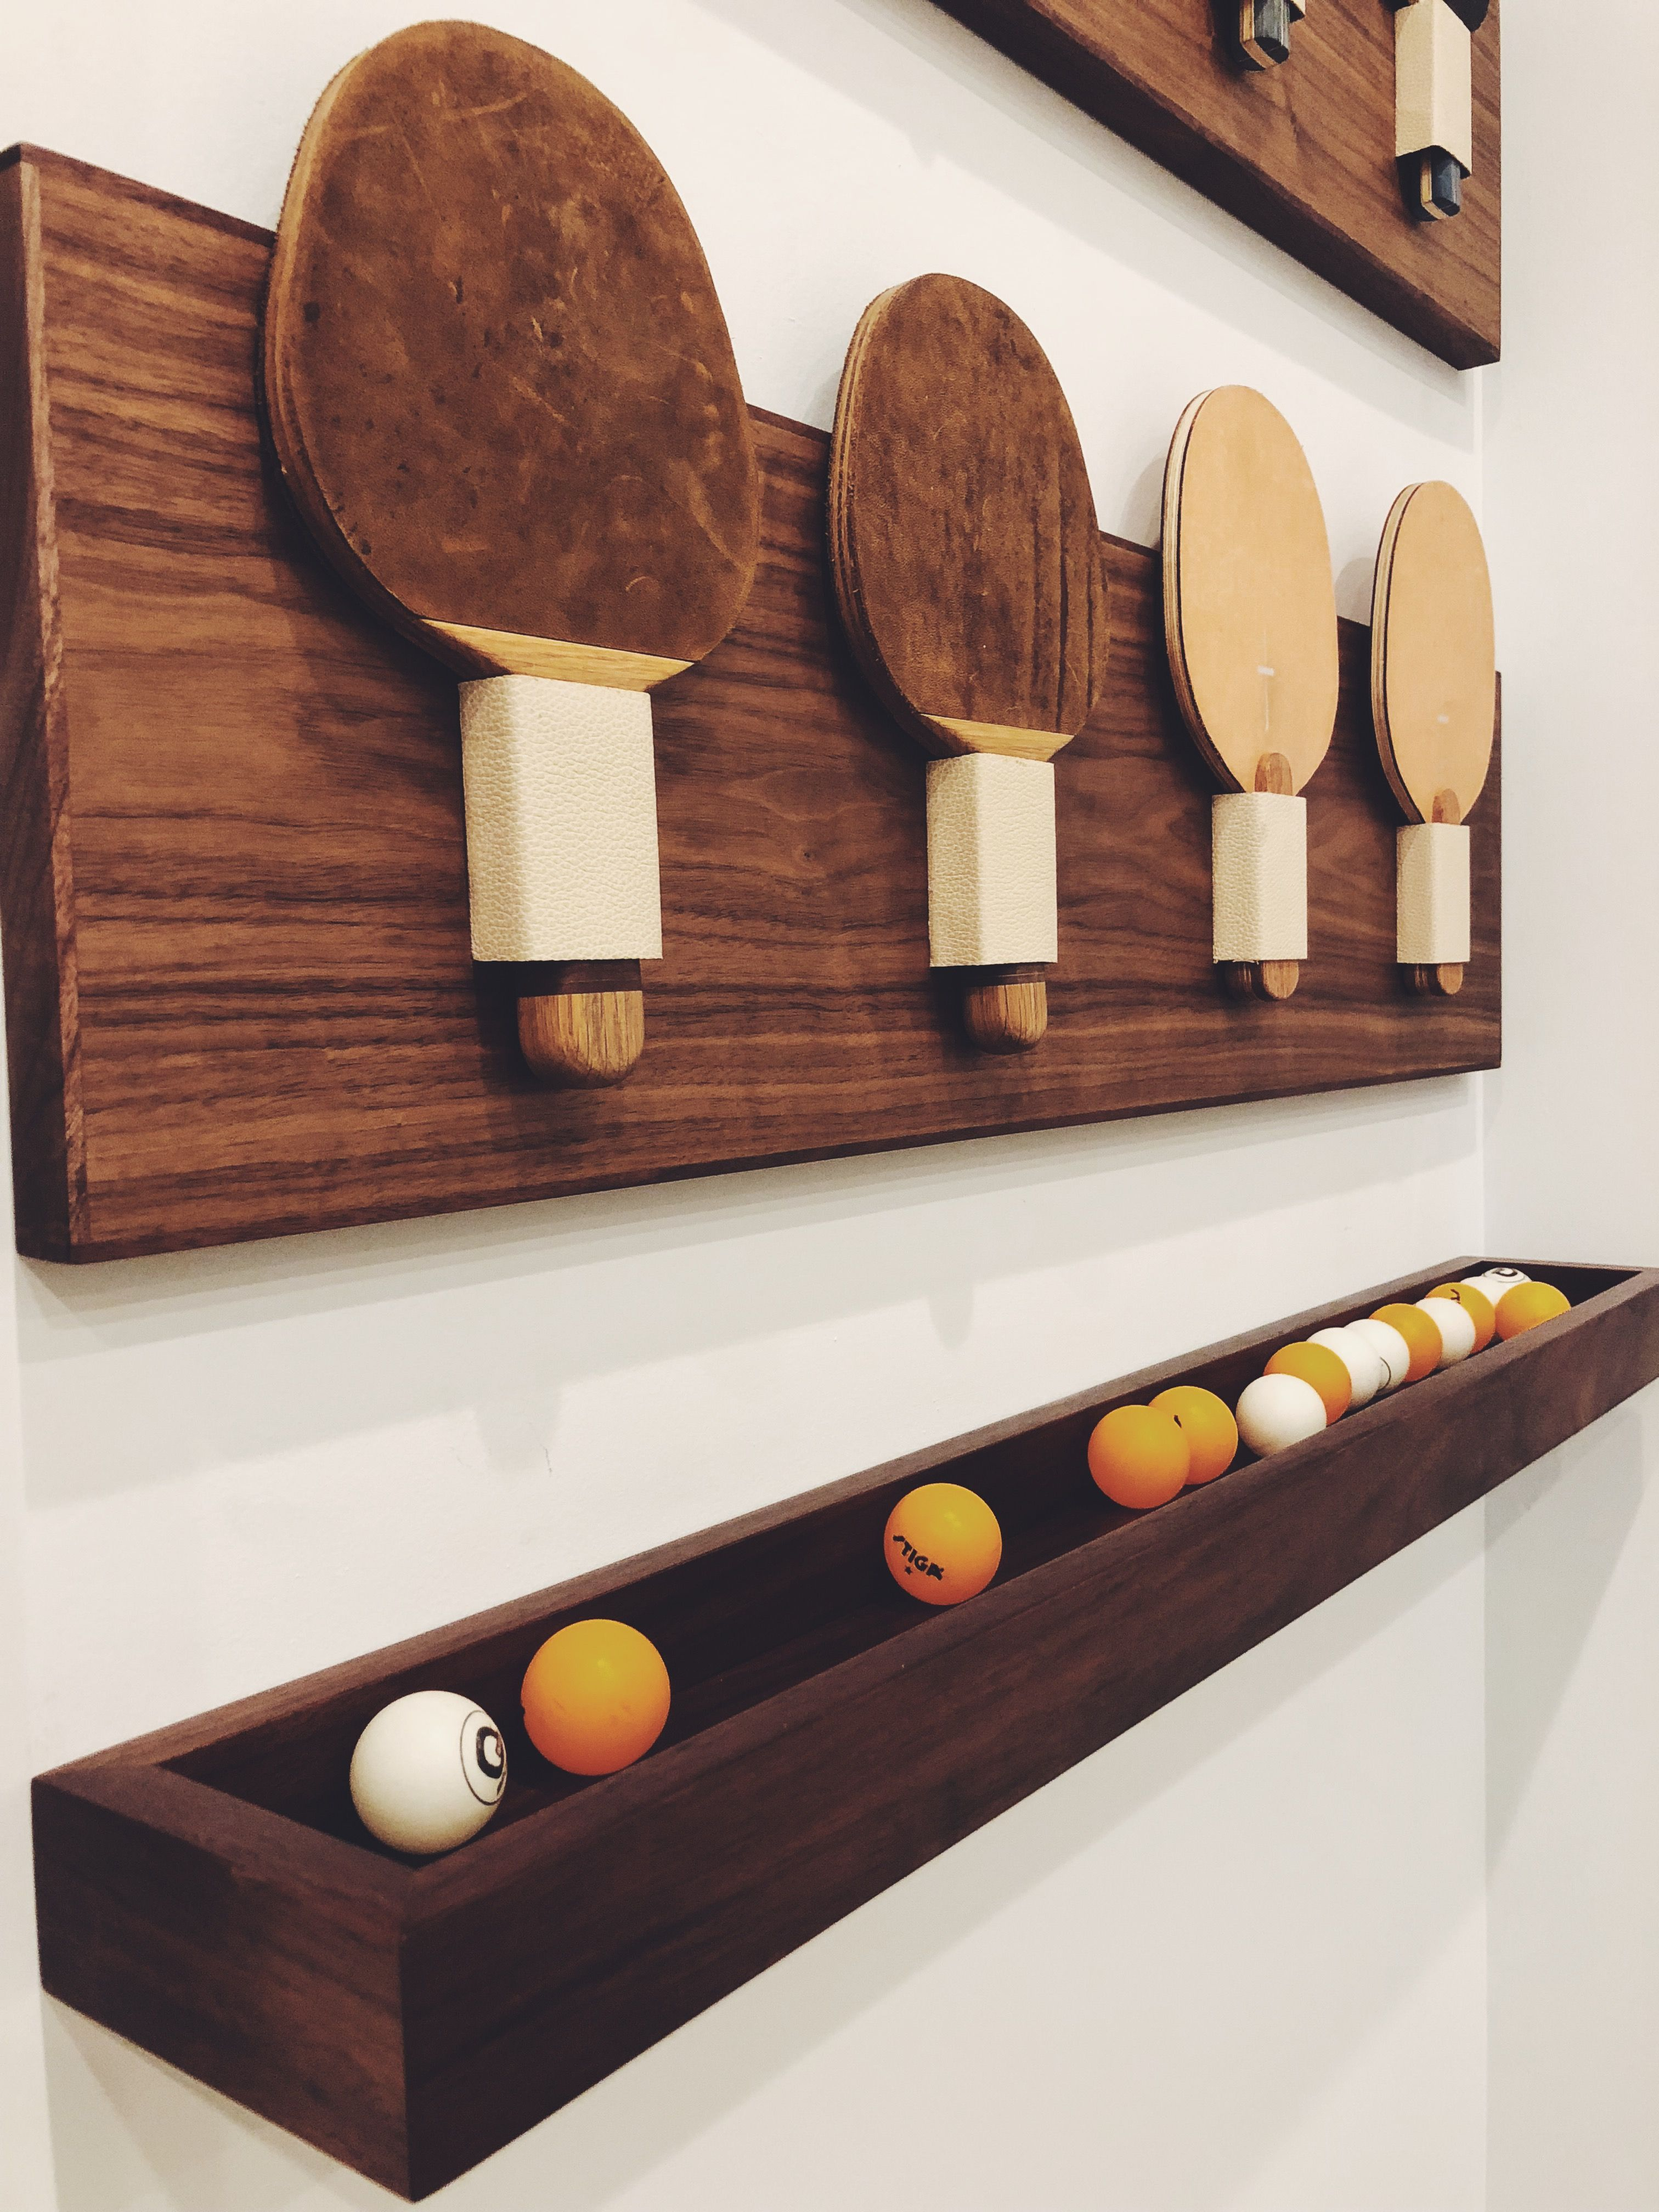 Ping Pong Paddle And Balls Holder Made In Walnut Sharing